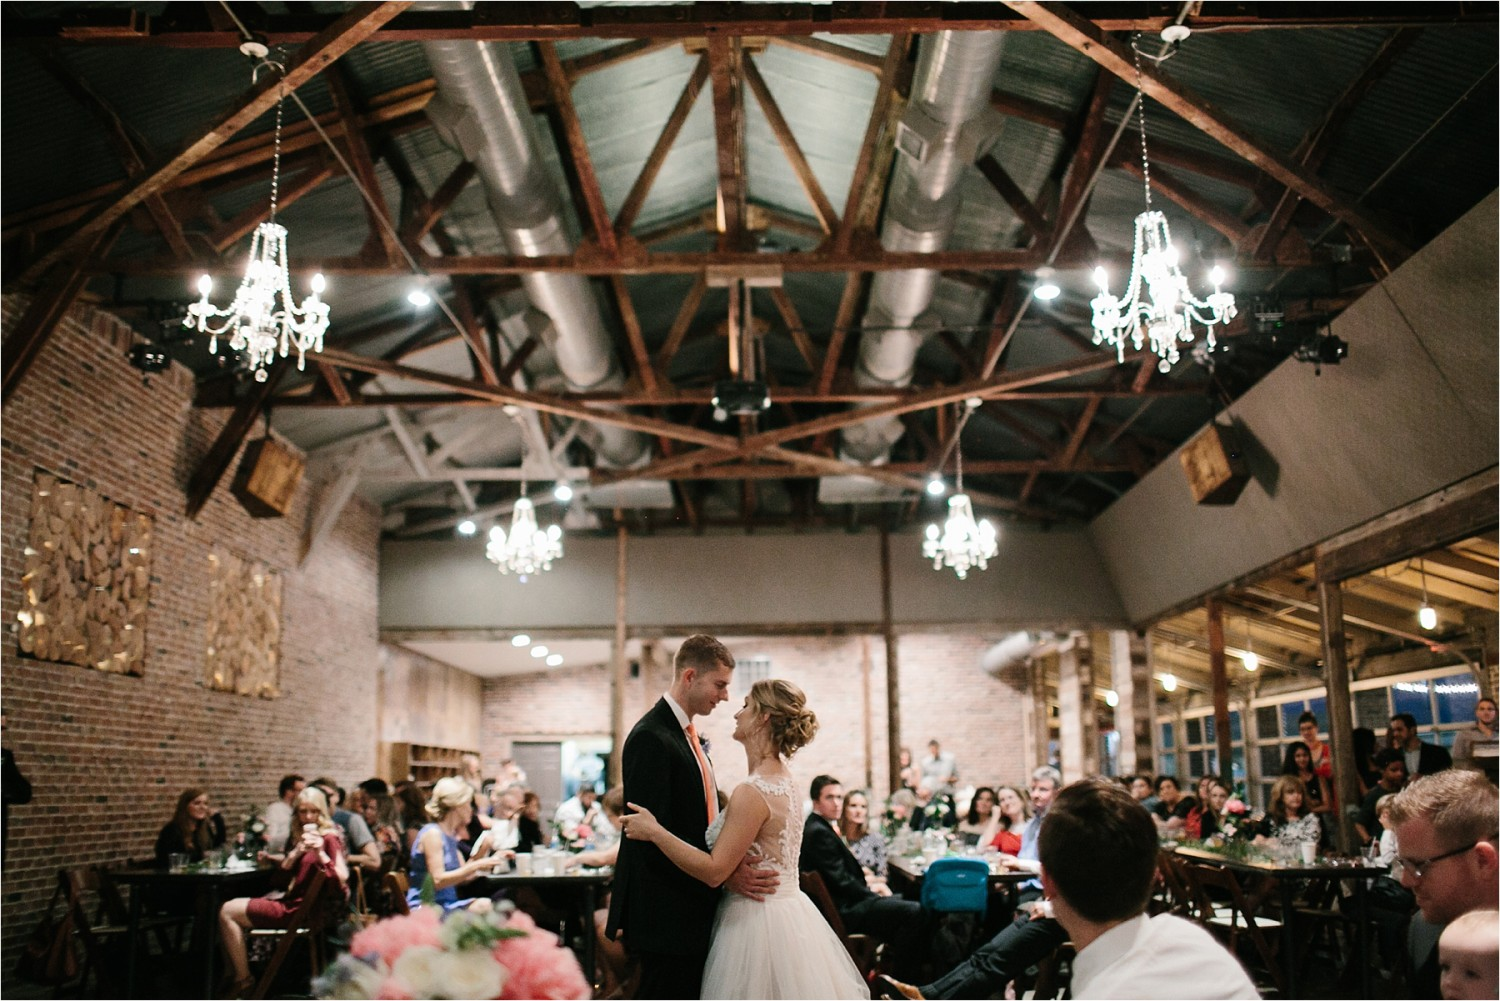 a-riffle-paper-co-inspired-color-pallete-wedding-at-mopac-event-center-in-fort-worth-tx-by-north-texas-wedding-photographer-rachel-meagan-photography-_-075